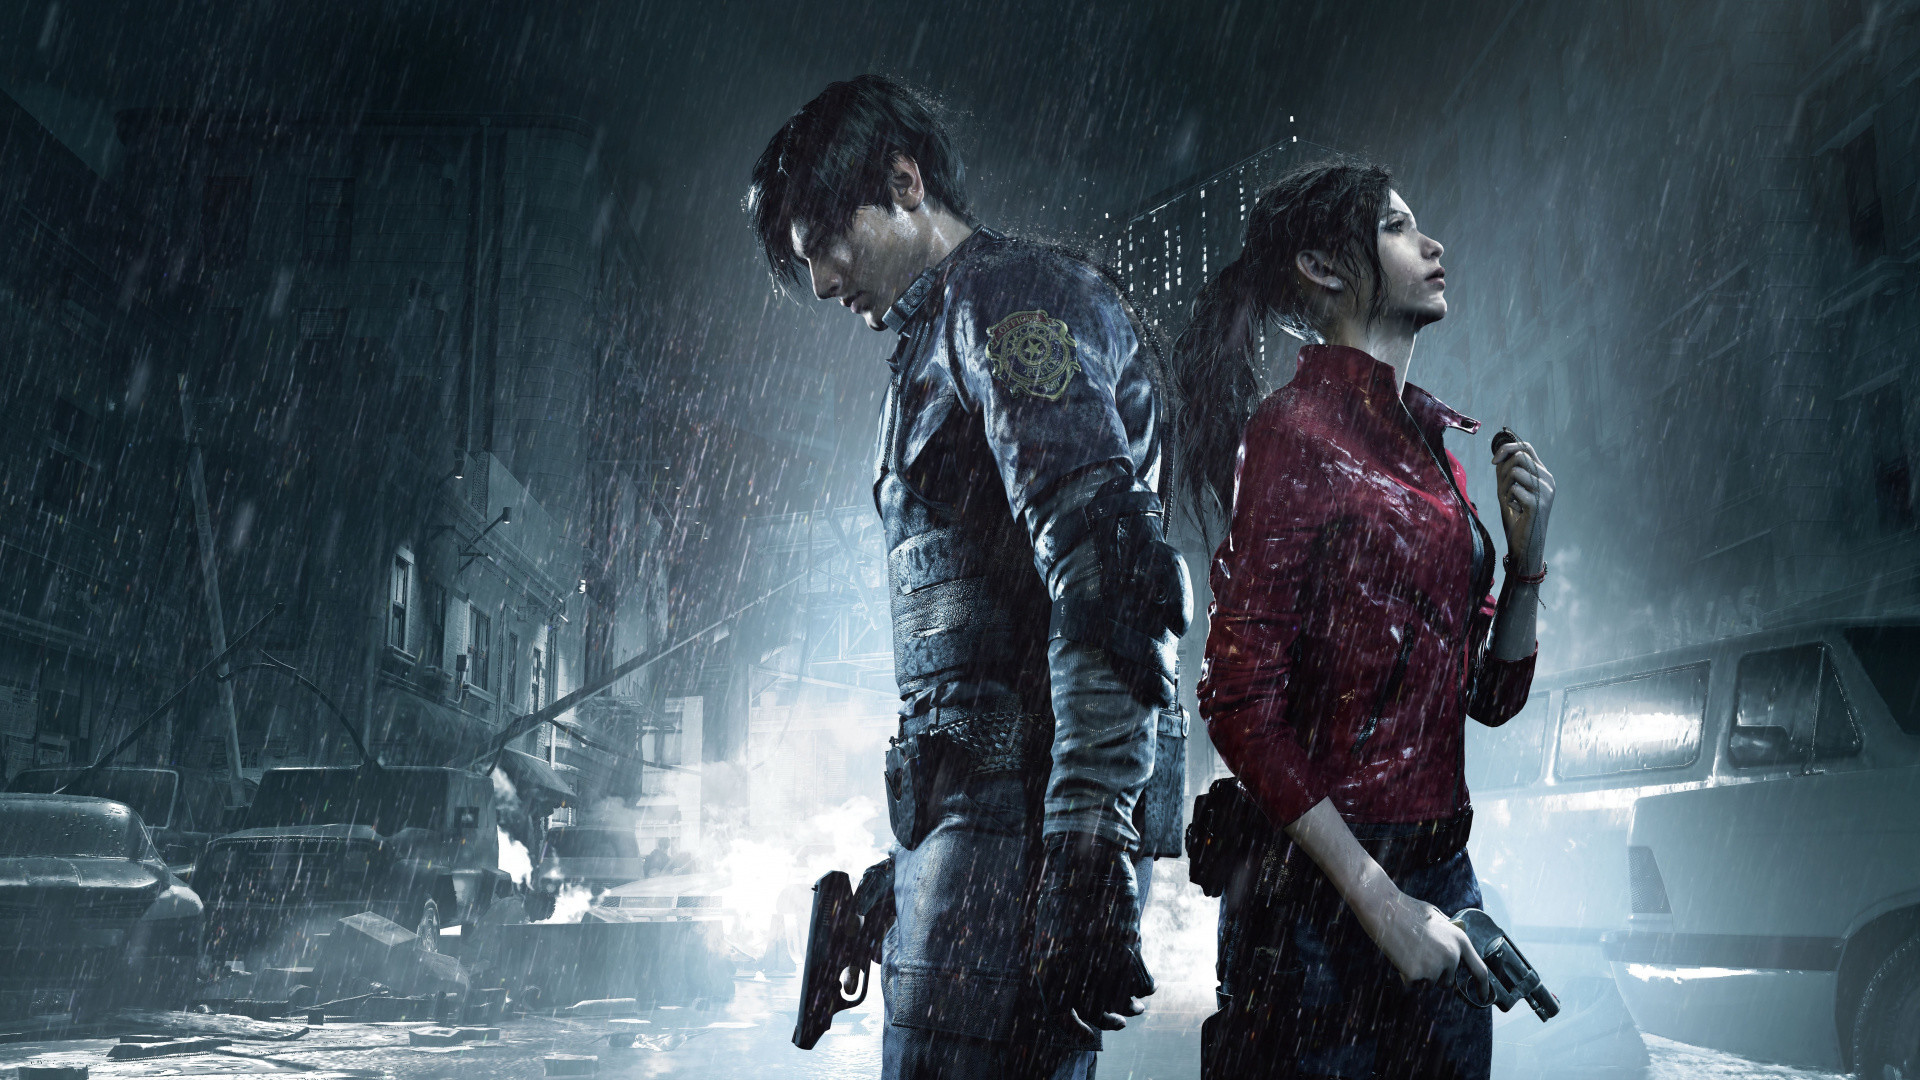 Res: 1920x1080,  wallpaper Resident Evil 2, Claire Redfield, Leon Kennedy, video  game, 2018